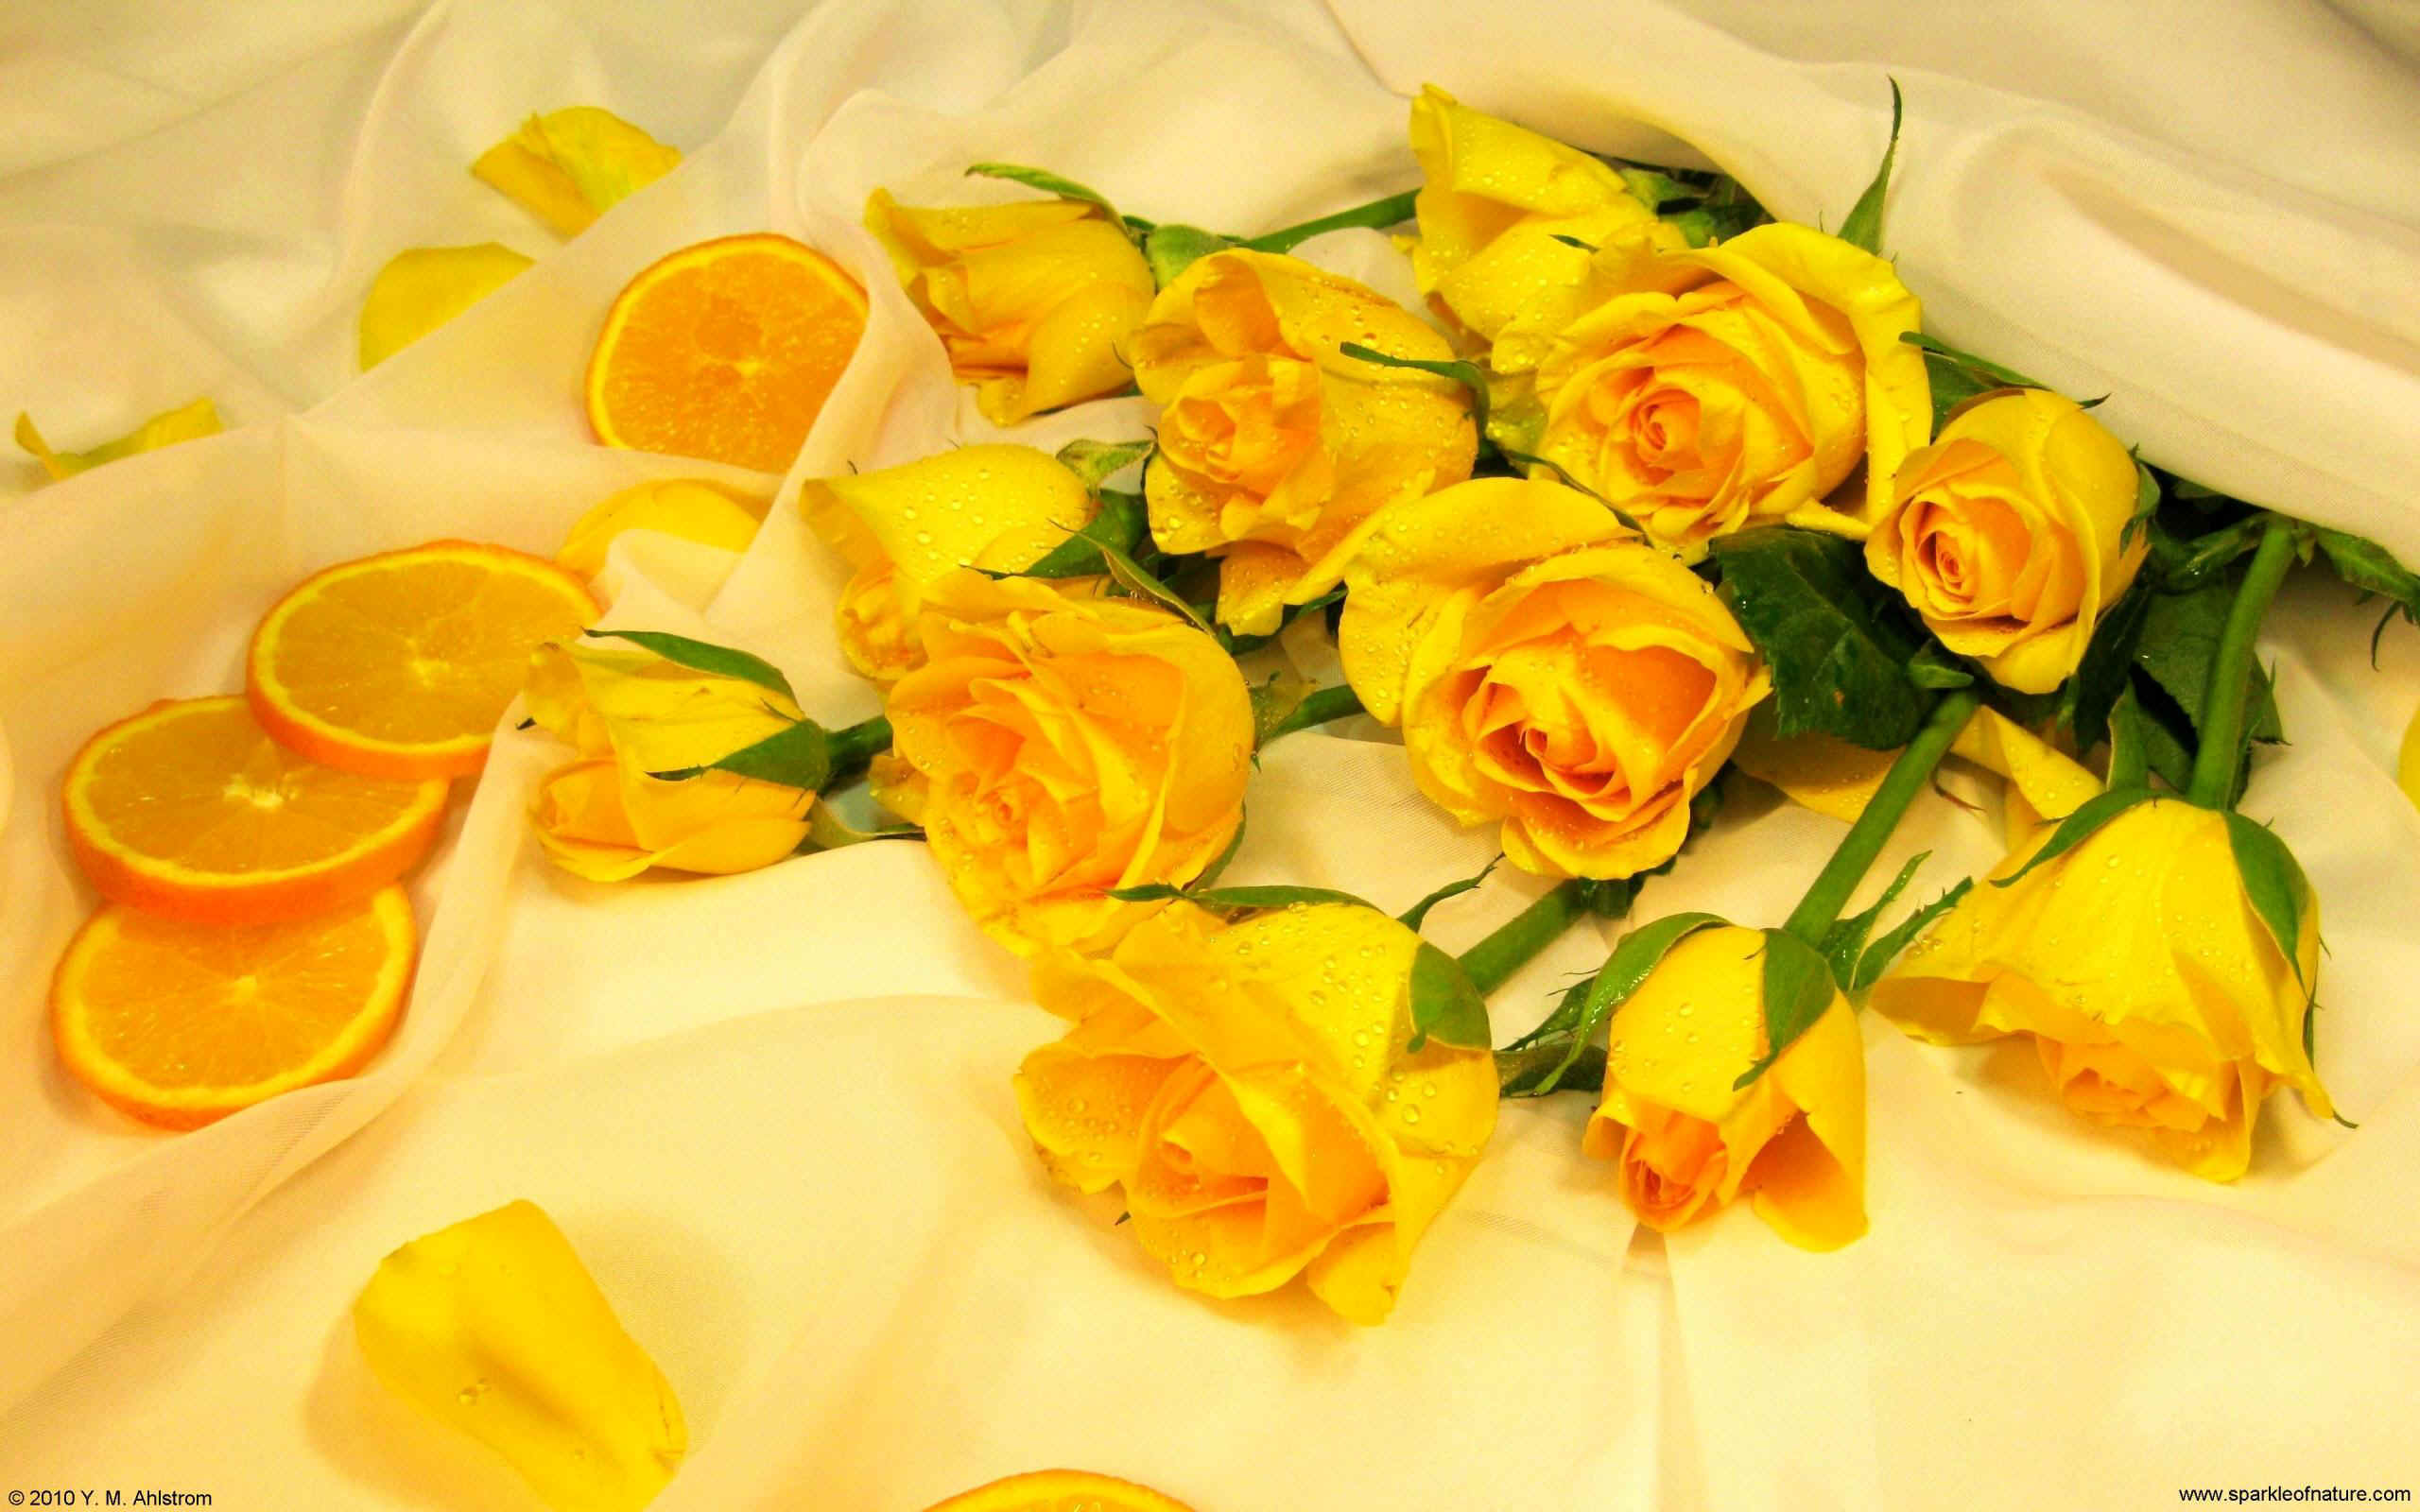 20091 oranges and yellow roses w 2560x1600.jpg (378050 bytes)